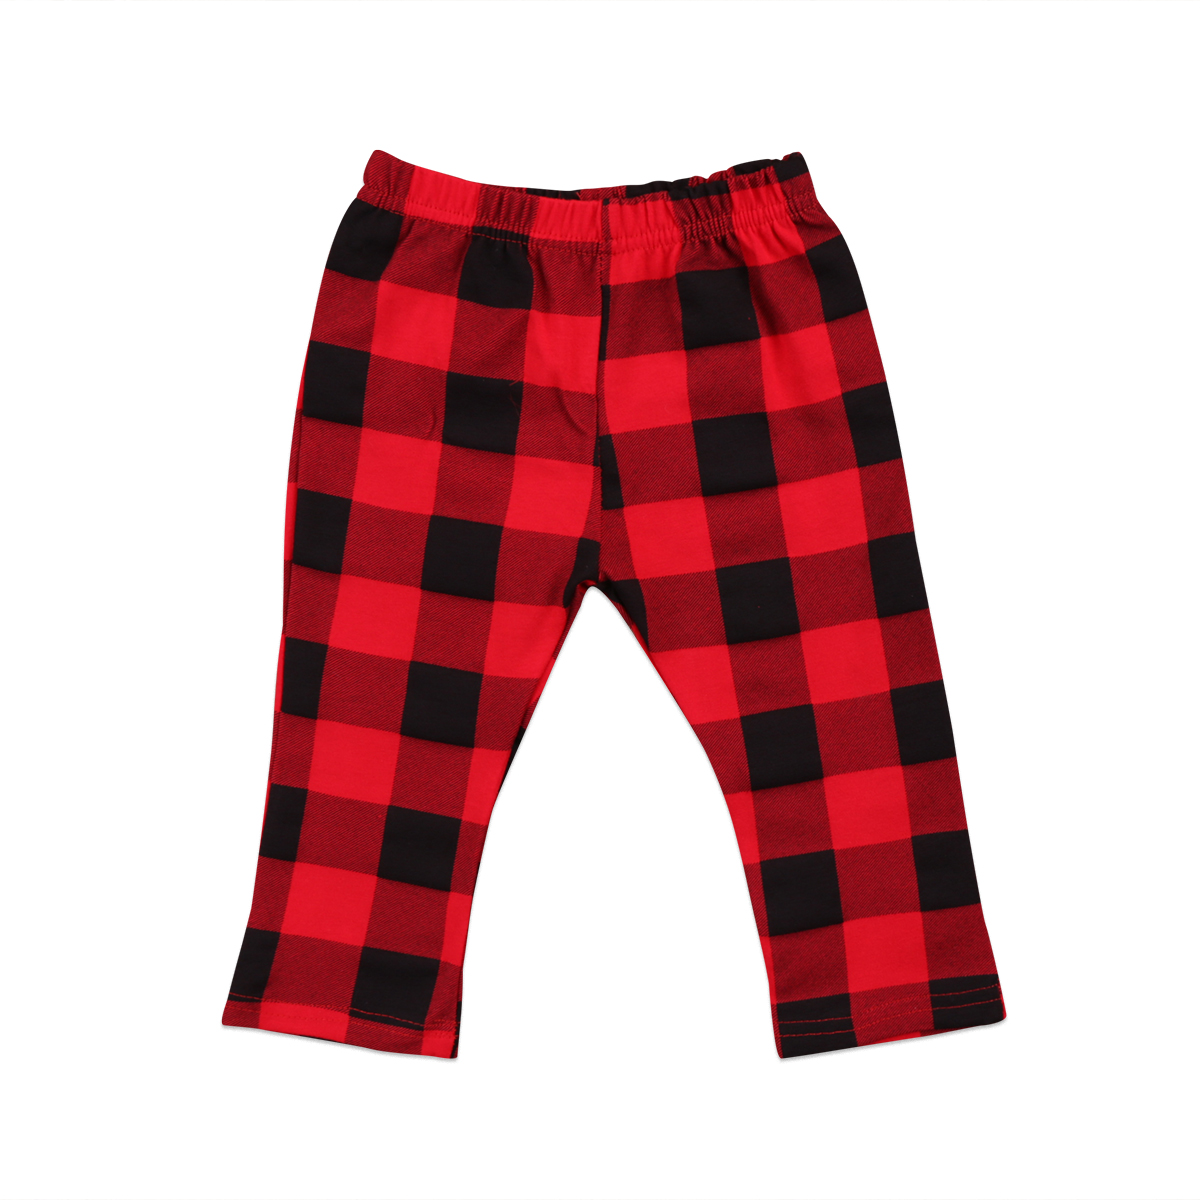 0-3T Red Plaid Newborn Kids Baby Girls Boys Pants Bottoms Cute Baby Clothes Plaid Pants 6M 12M 18M 24M 3T(China)